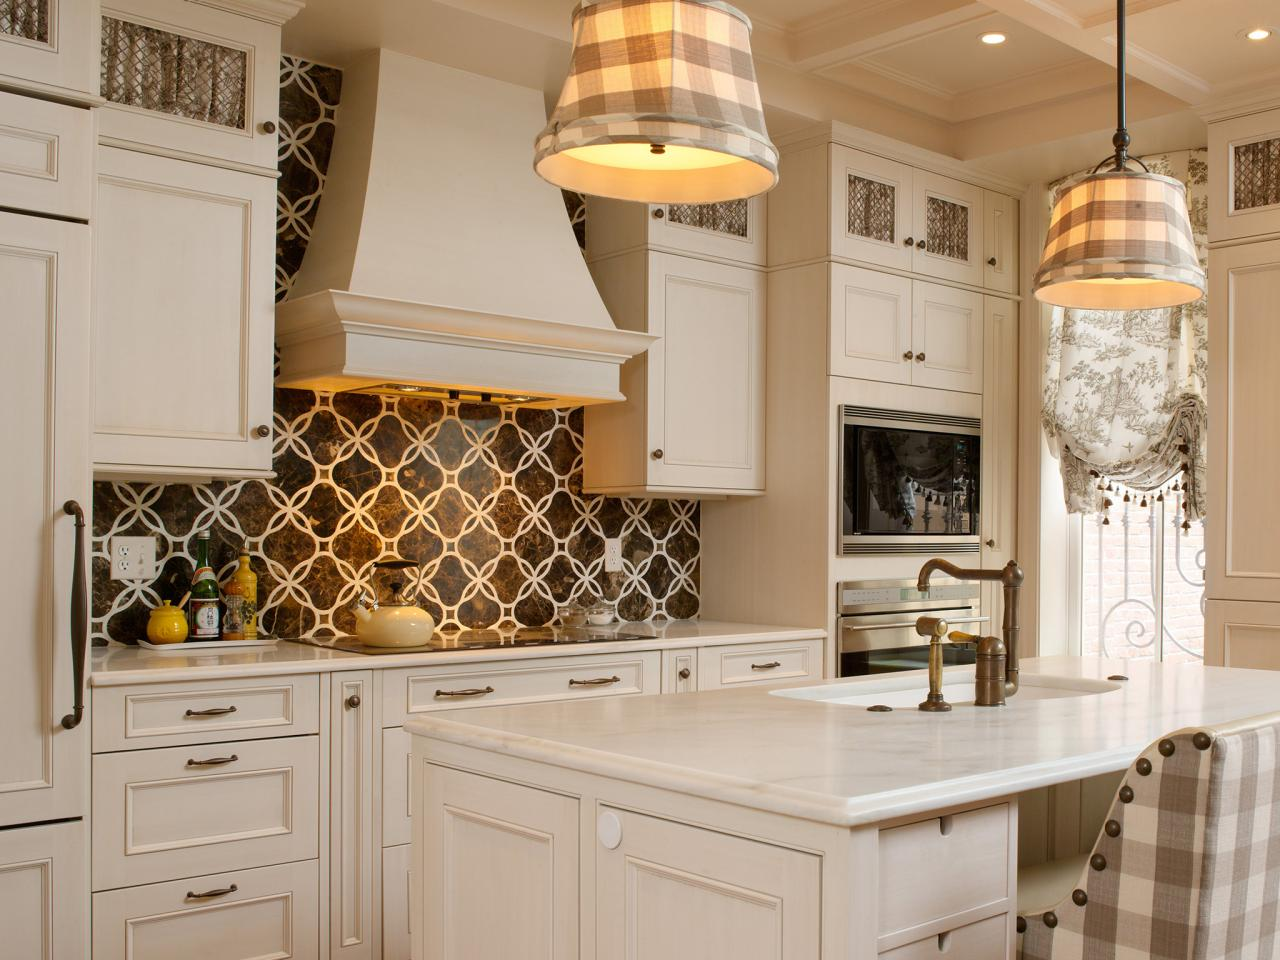 Kitchen Backsplash Designs Delectable Kitchen Backsplash Design Ideas  Hgtv Design Inspiration